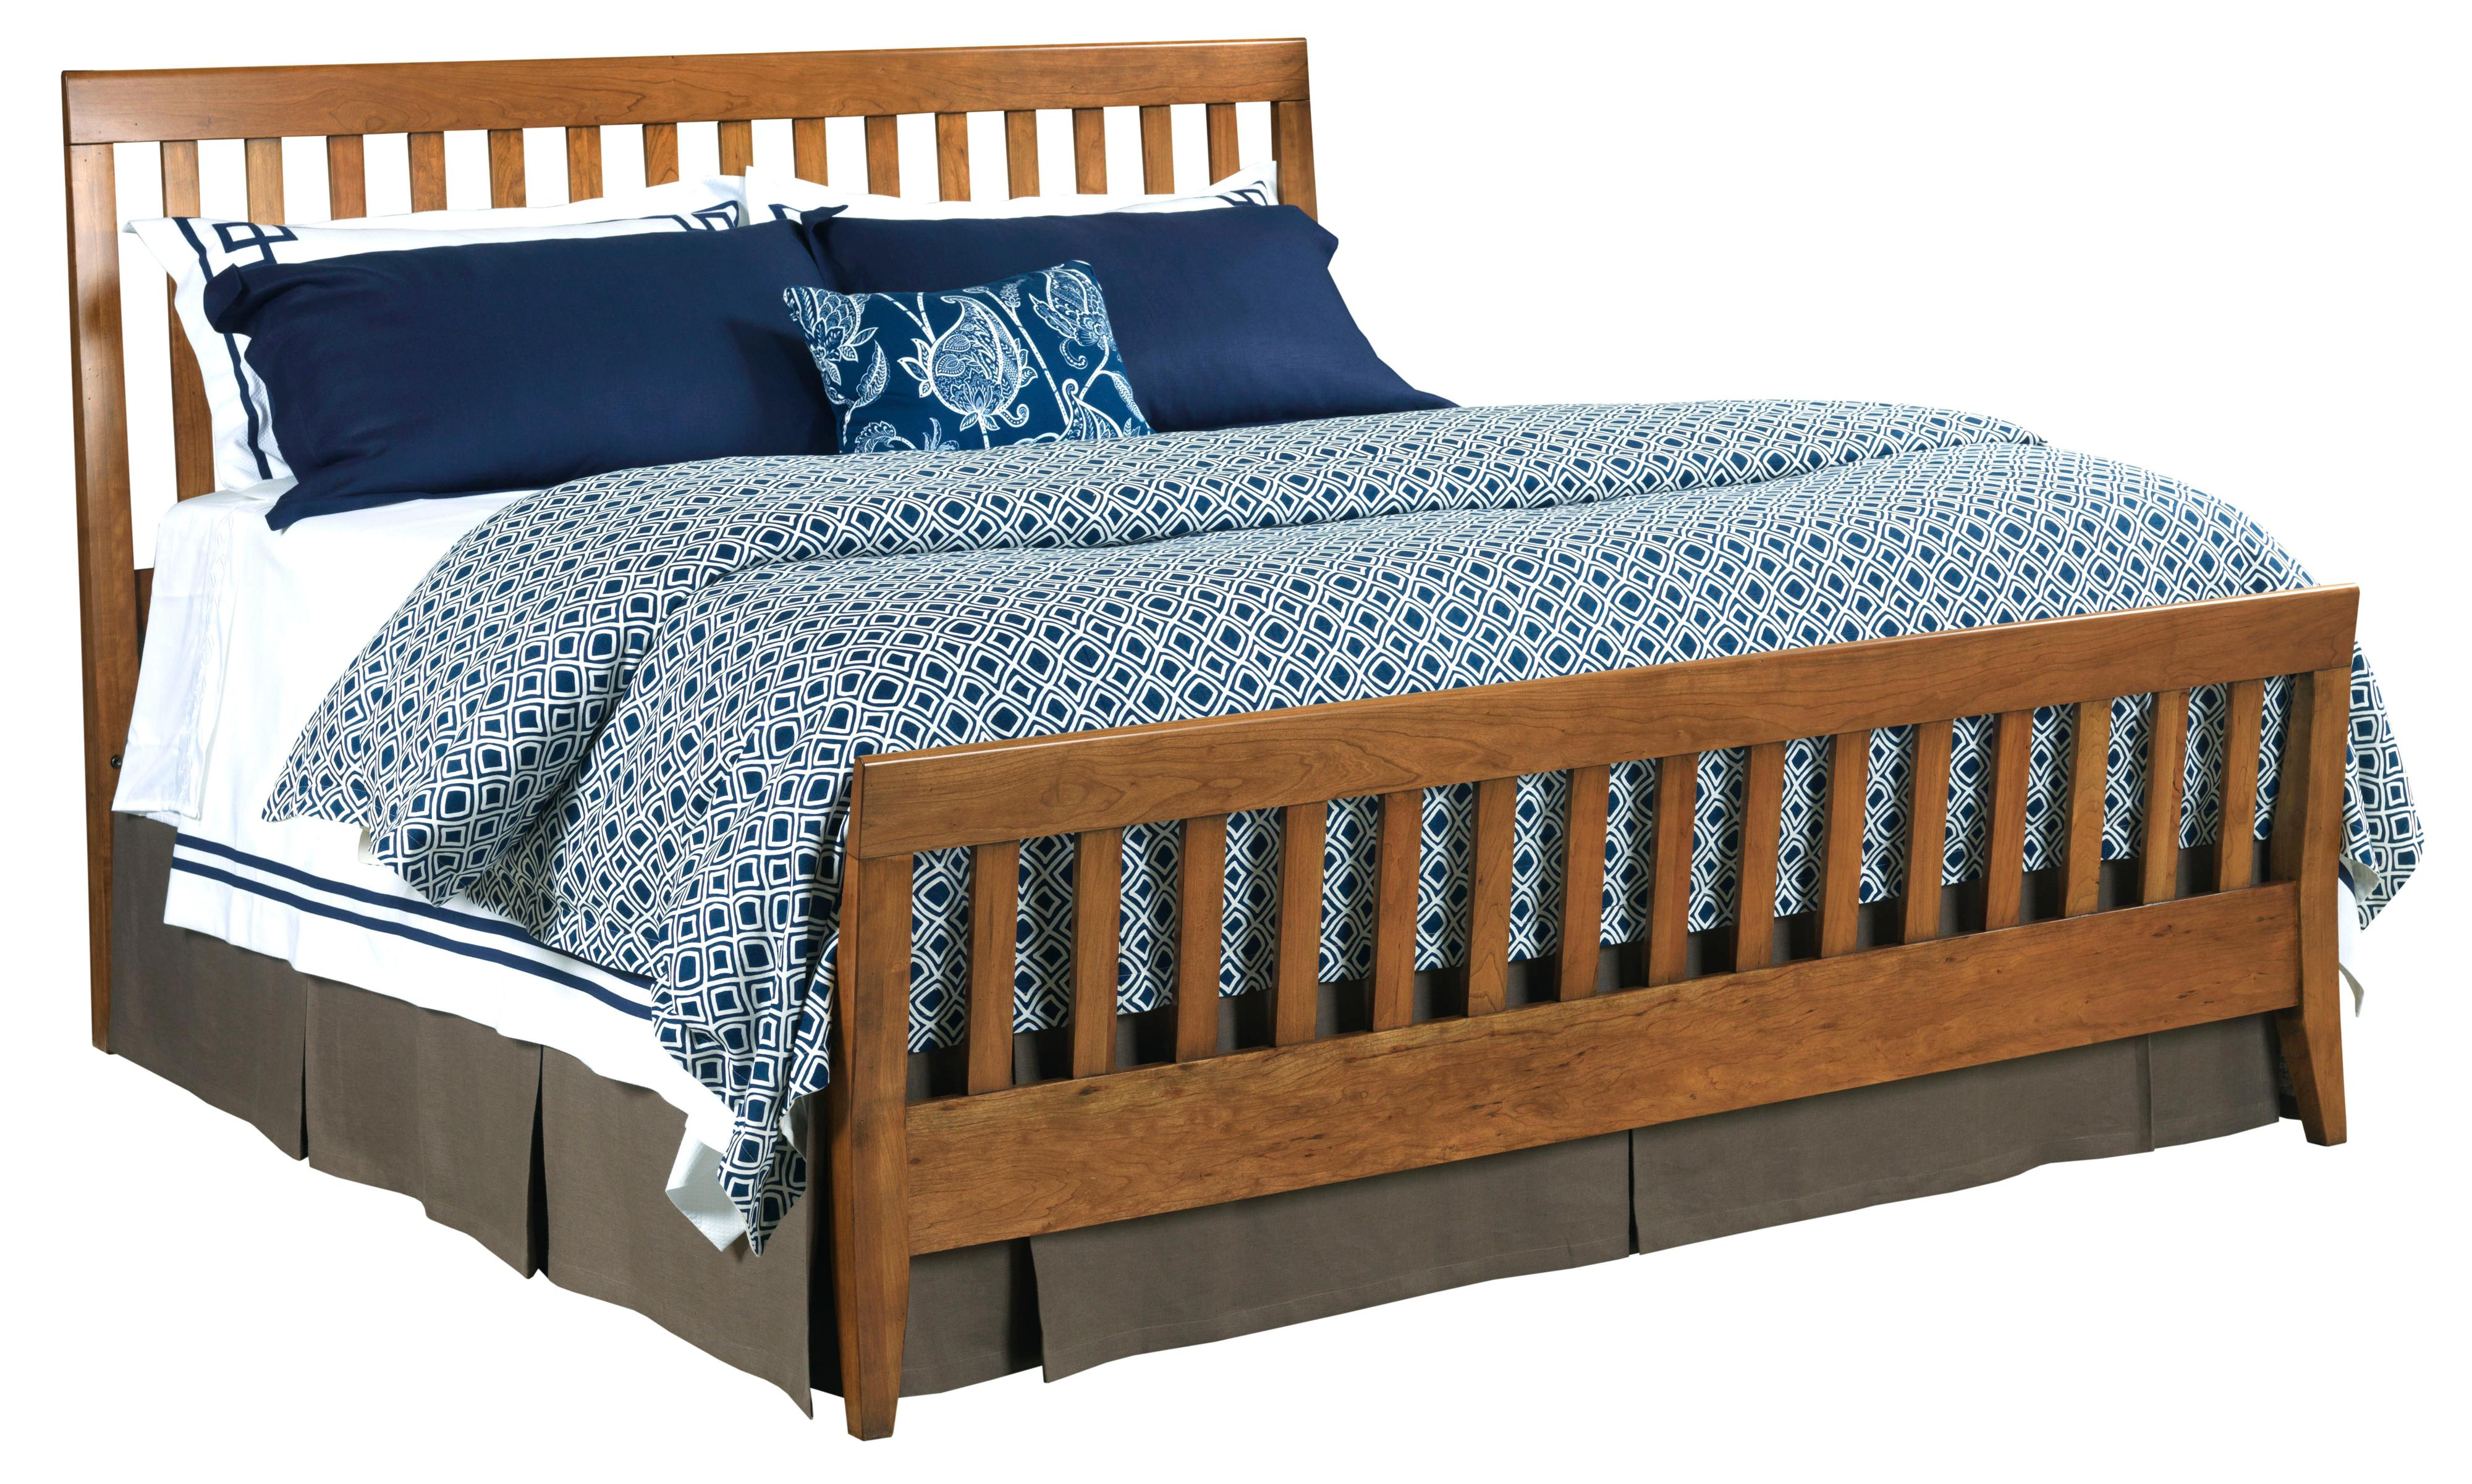 Kincaid Furniture Gatherings Queen Slat Bed - Item Number: 44-2710